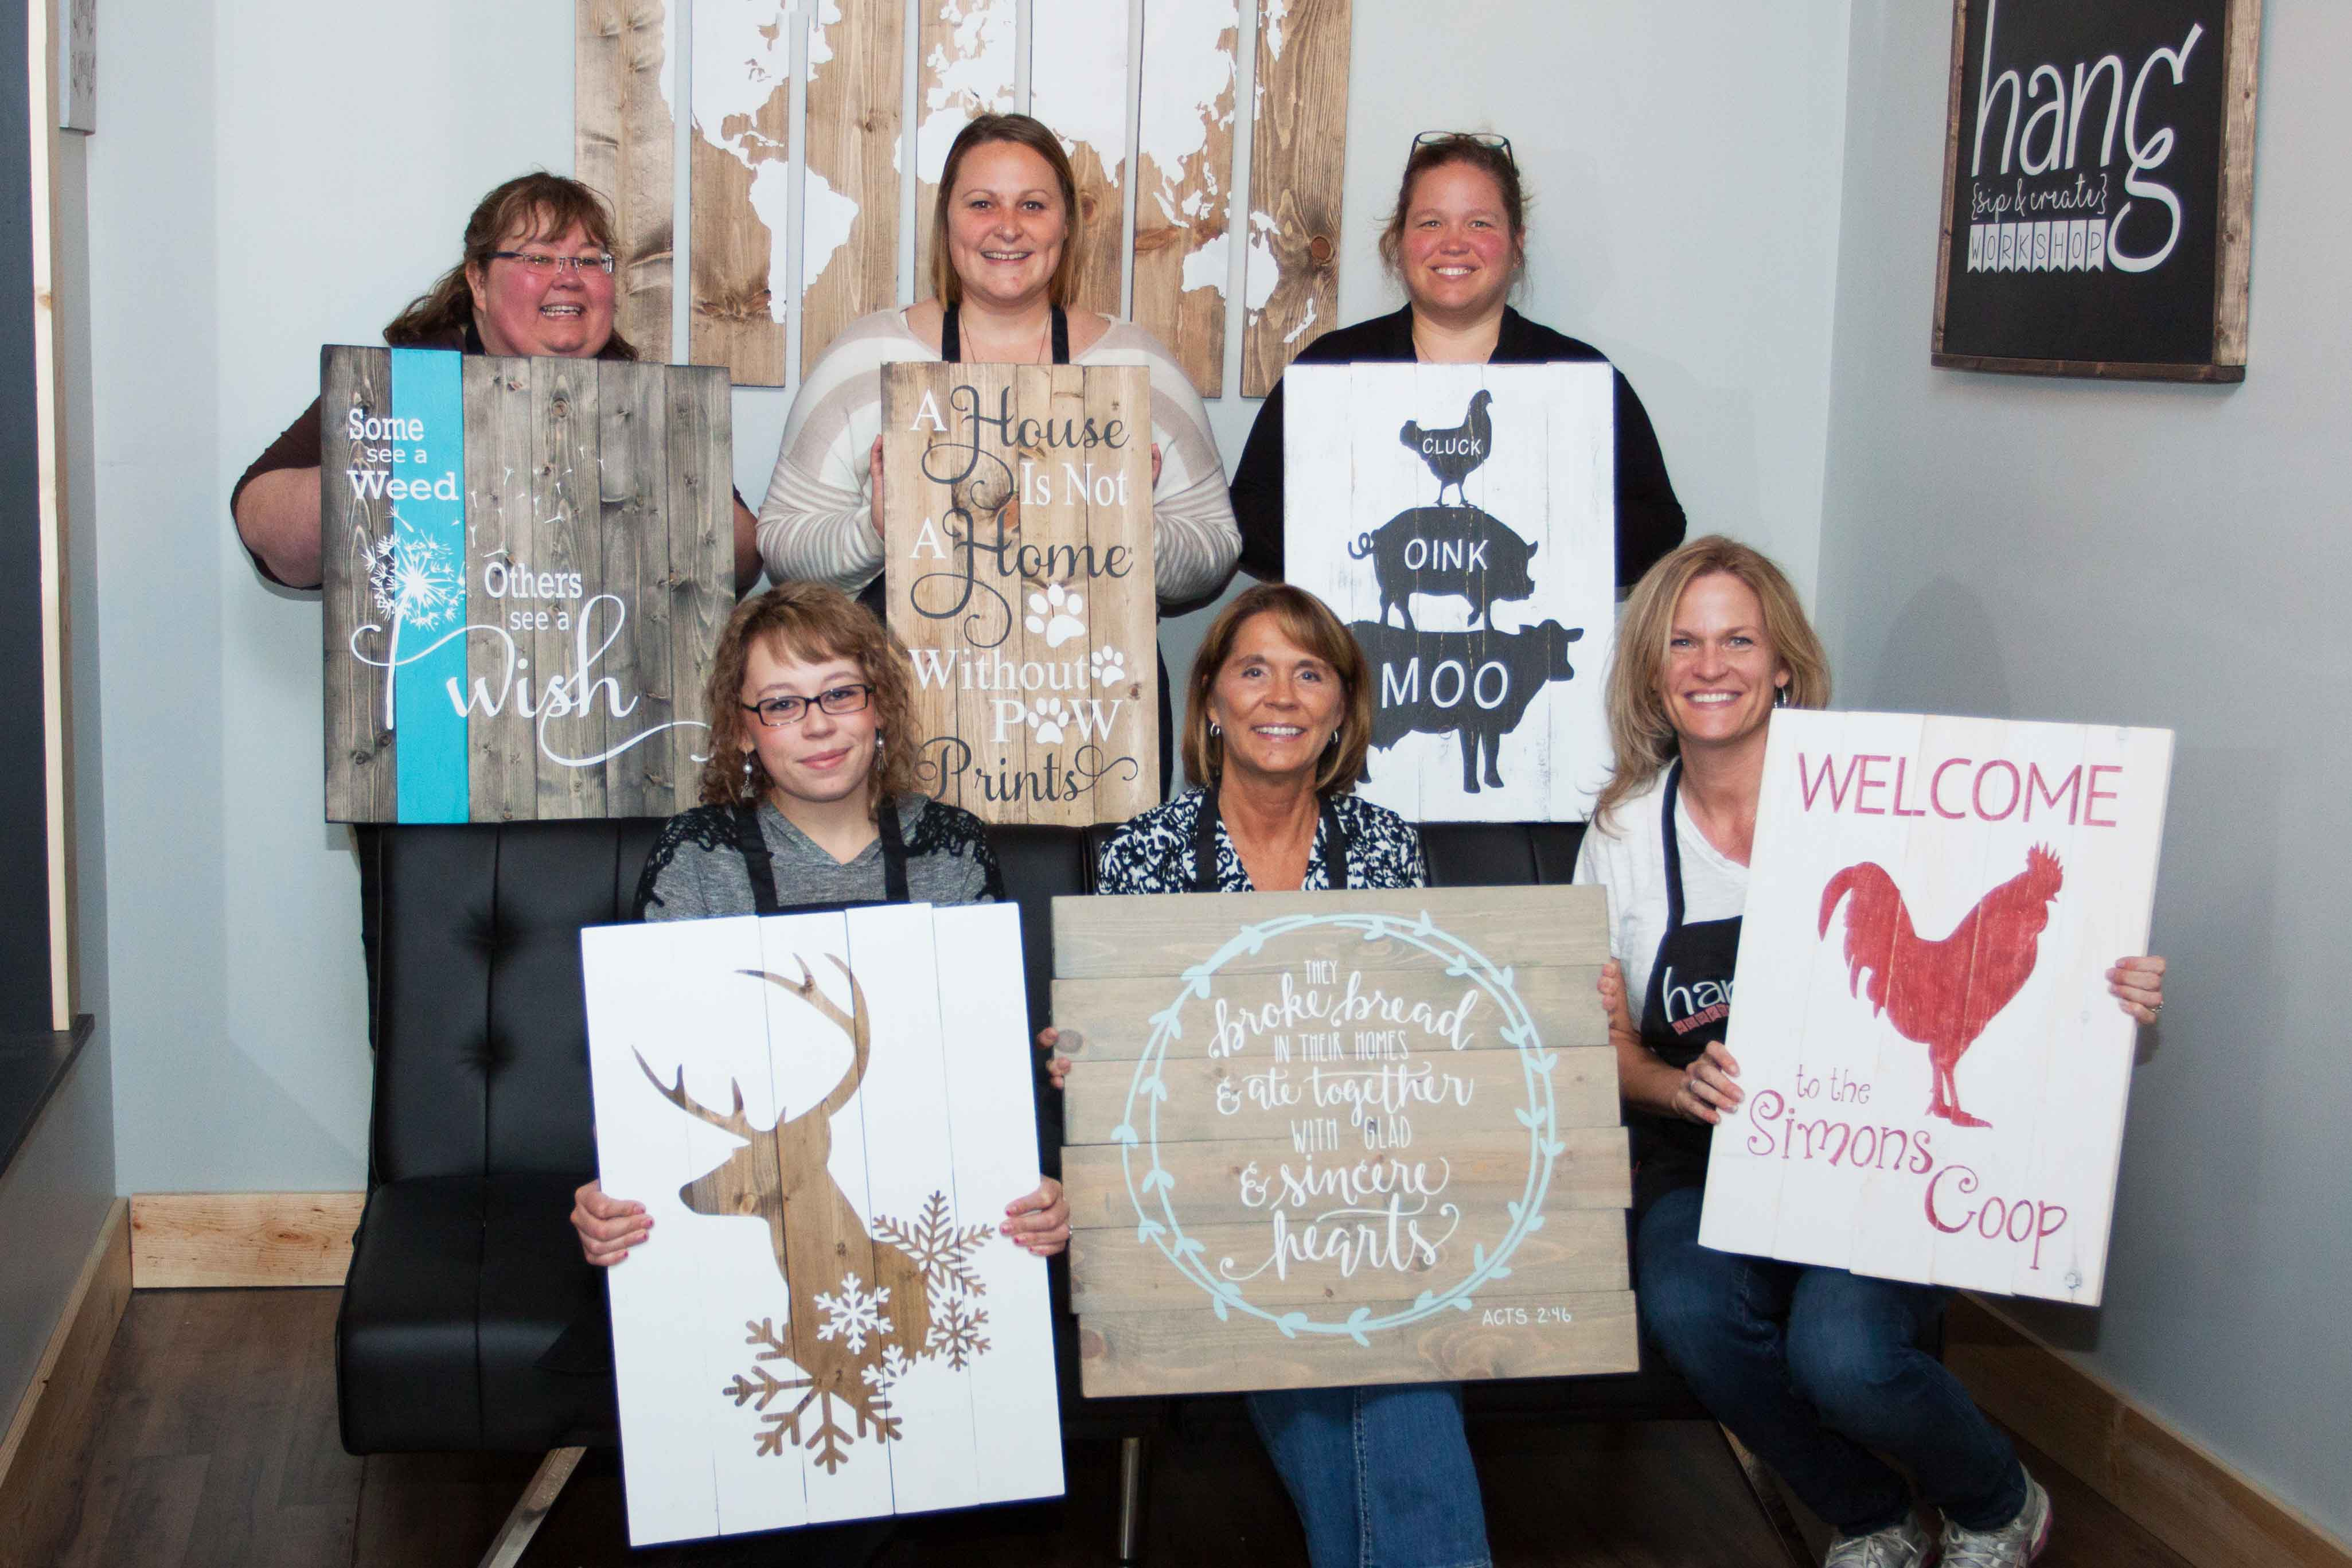 Paint and sip Private party in Traverse City Michigan. Painting class attendees each choose their own design and paint and sip and dab to create wood sign art.